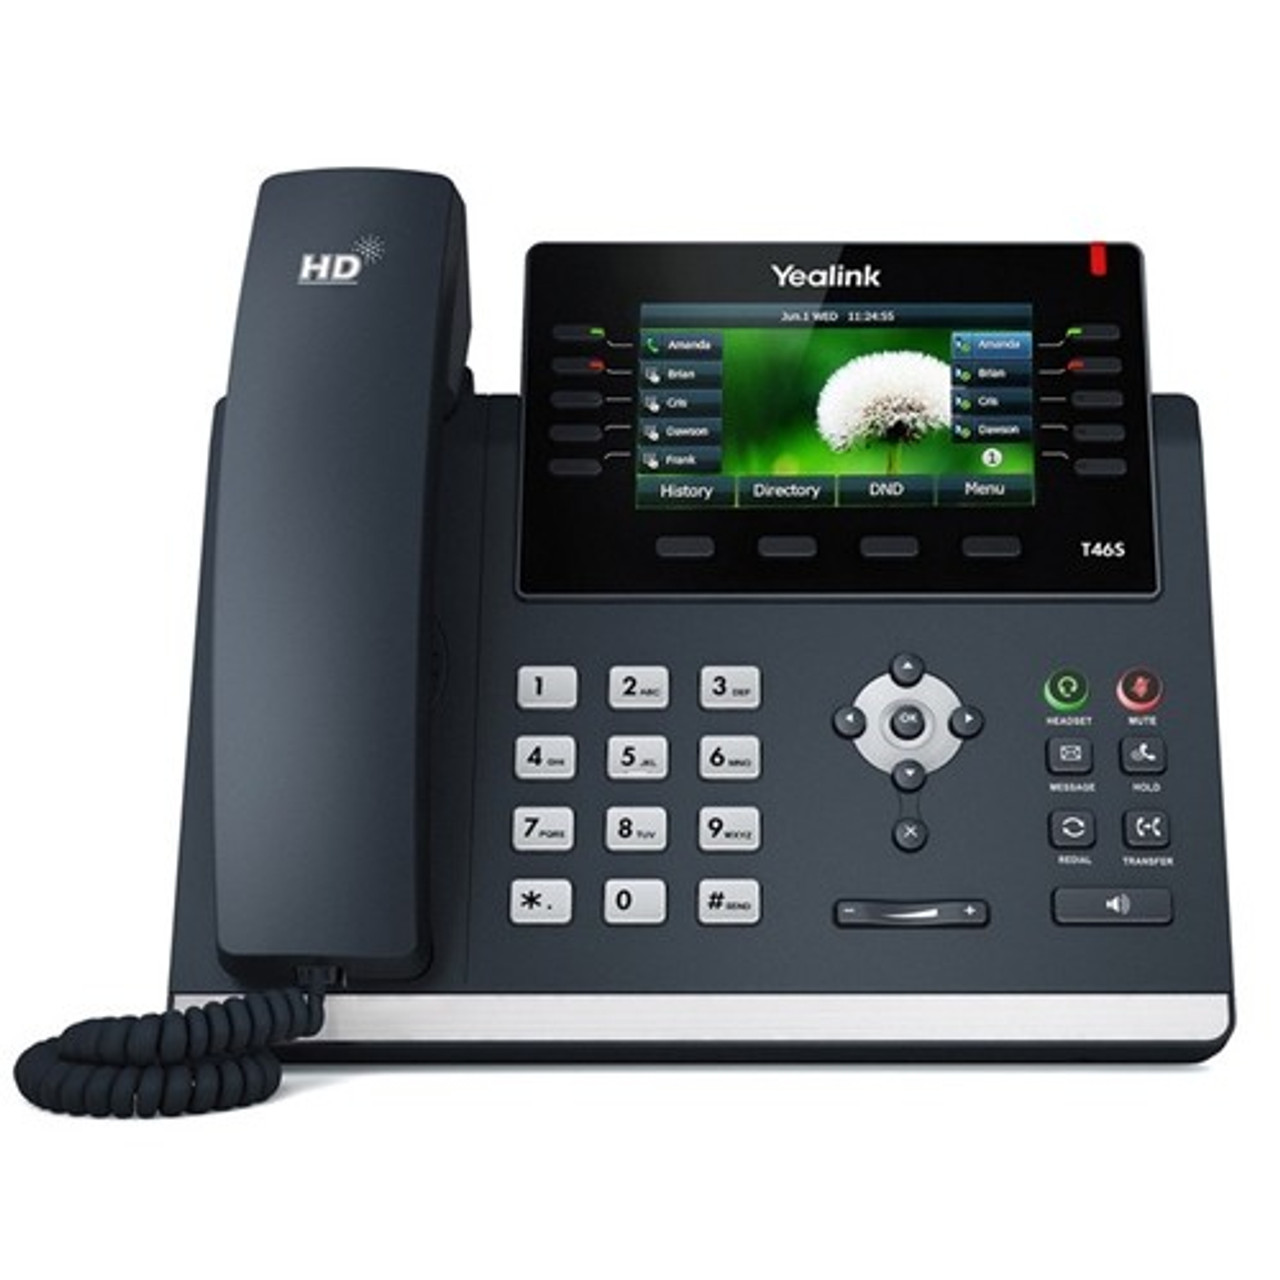 Product image for Yealink SIP-T46S 6 Line IP Phone   CX Computer Superstore